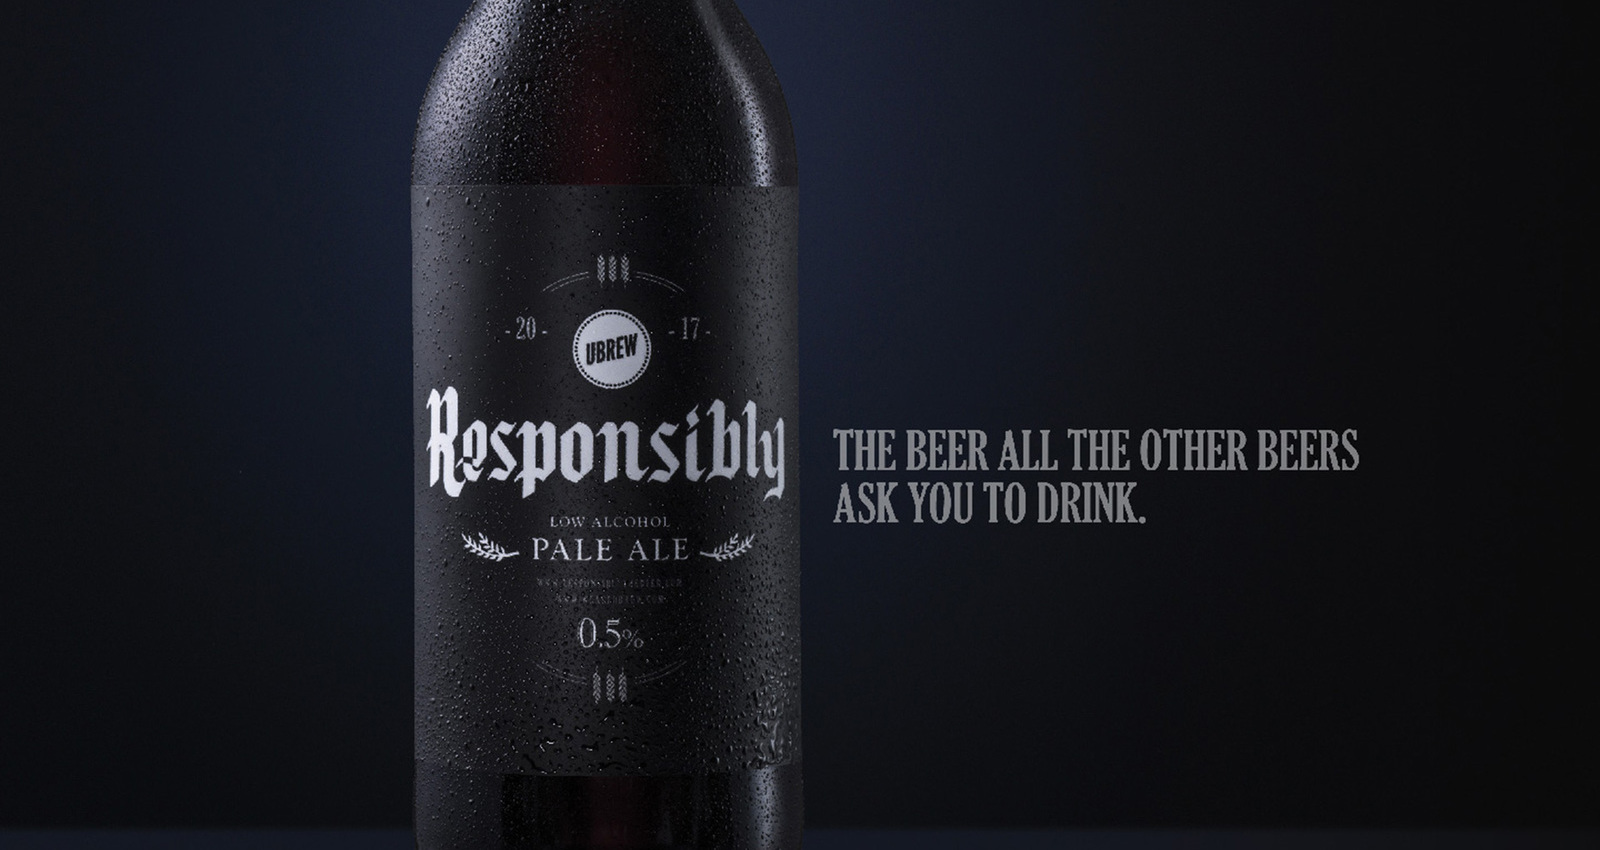 Responsibly the beer